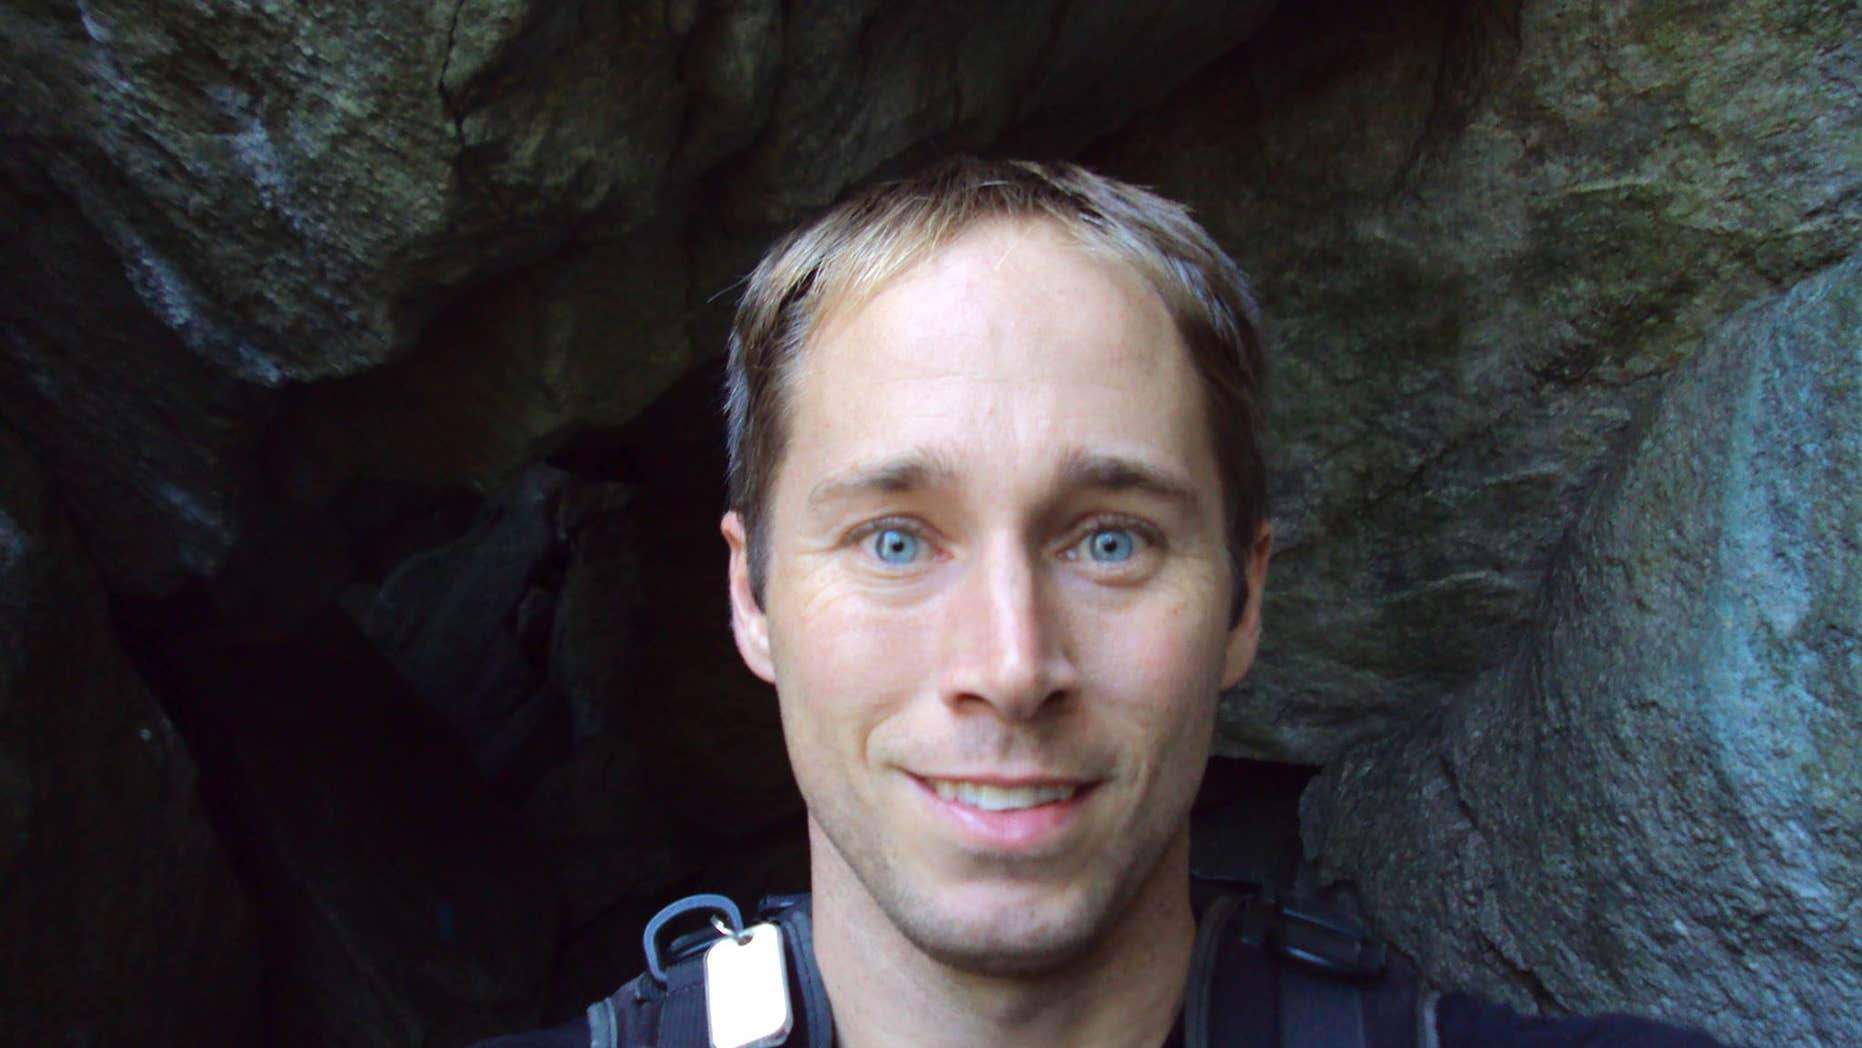 This undated photo shows Matthew Greene, a popular Pennsylvania math teacher who vanished while on a backpacking trip in California last month.